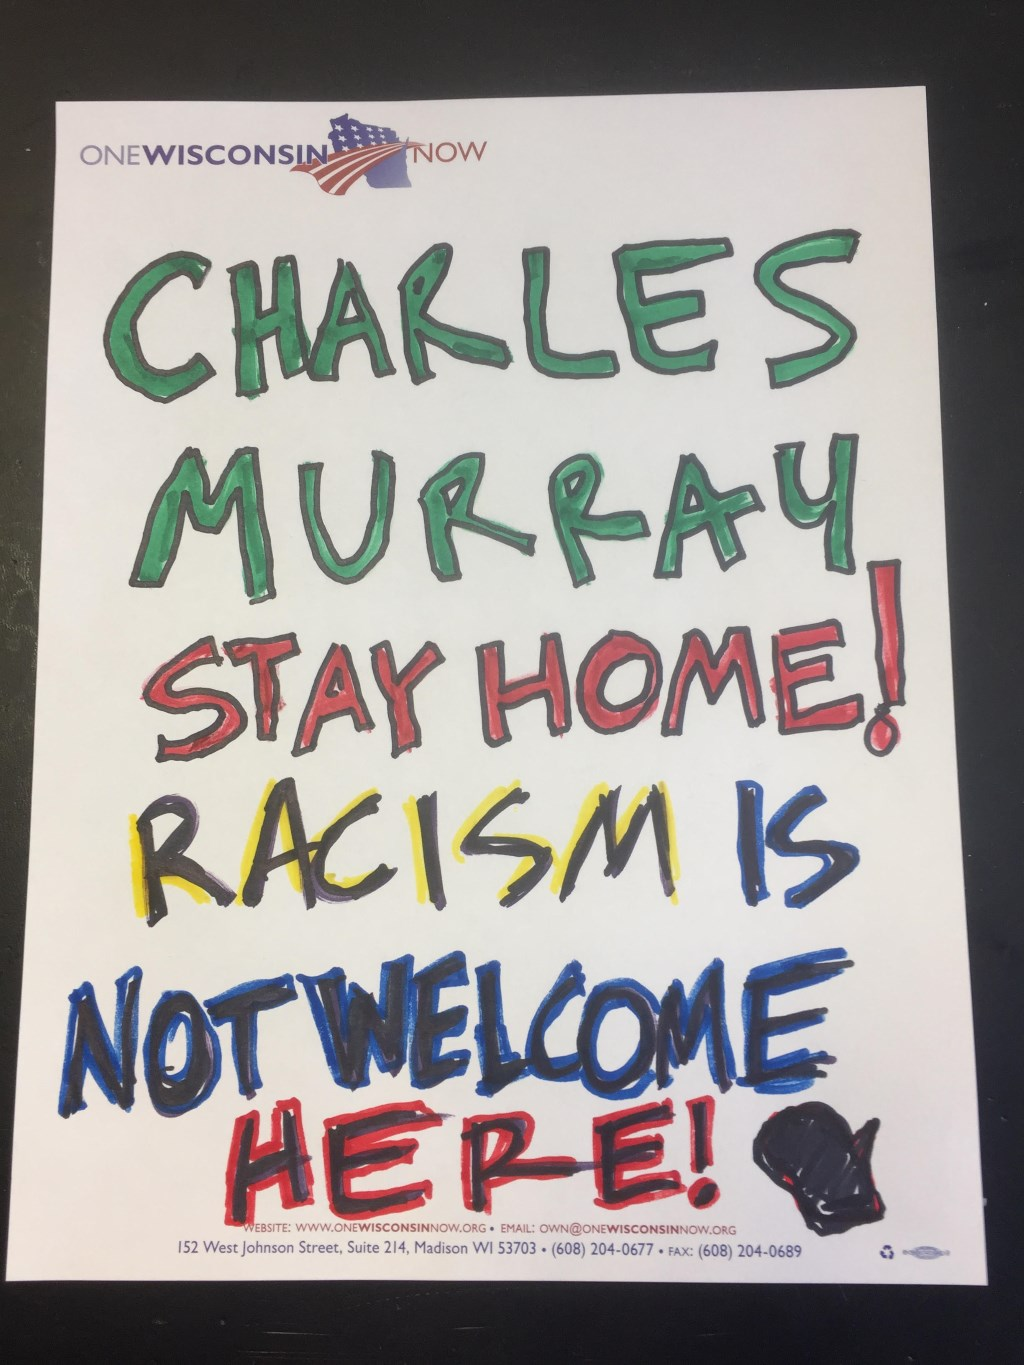 Charles Murray Stay Home! Racism is Not Weclom Here!